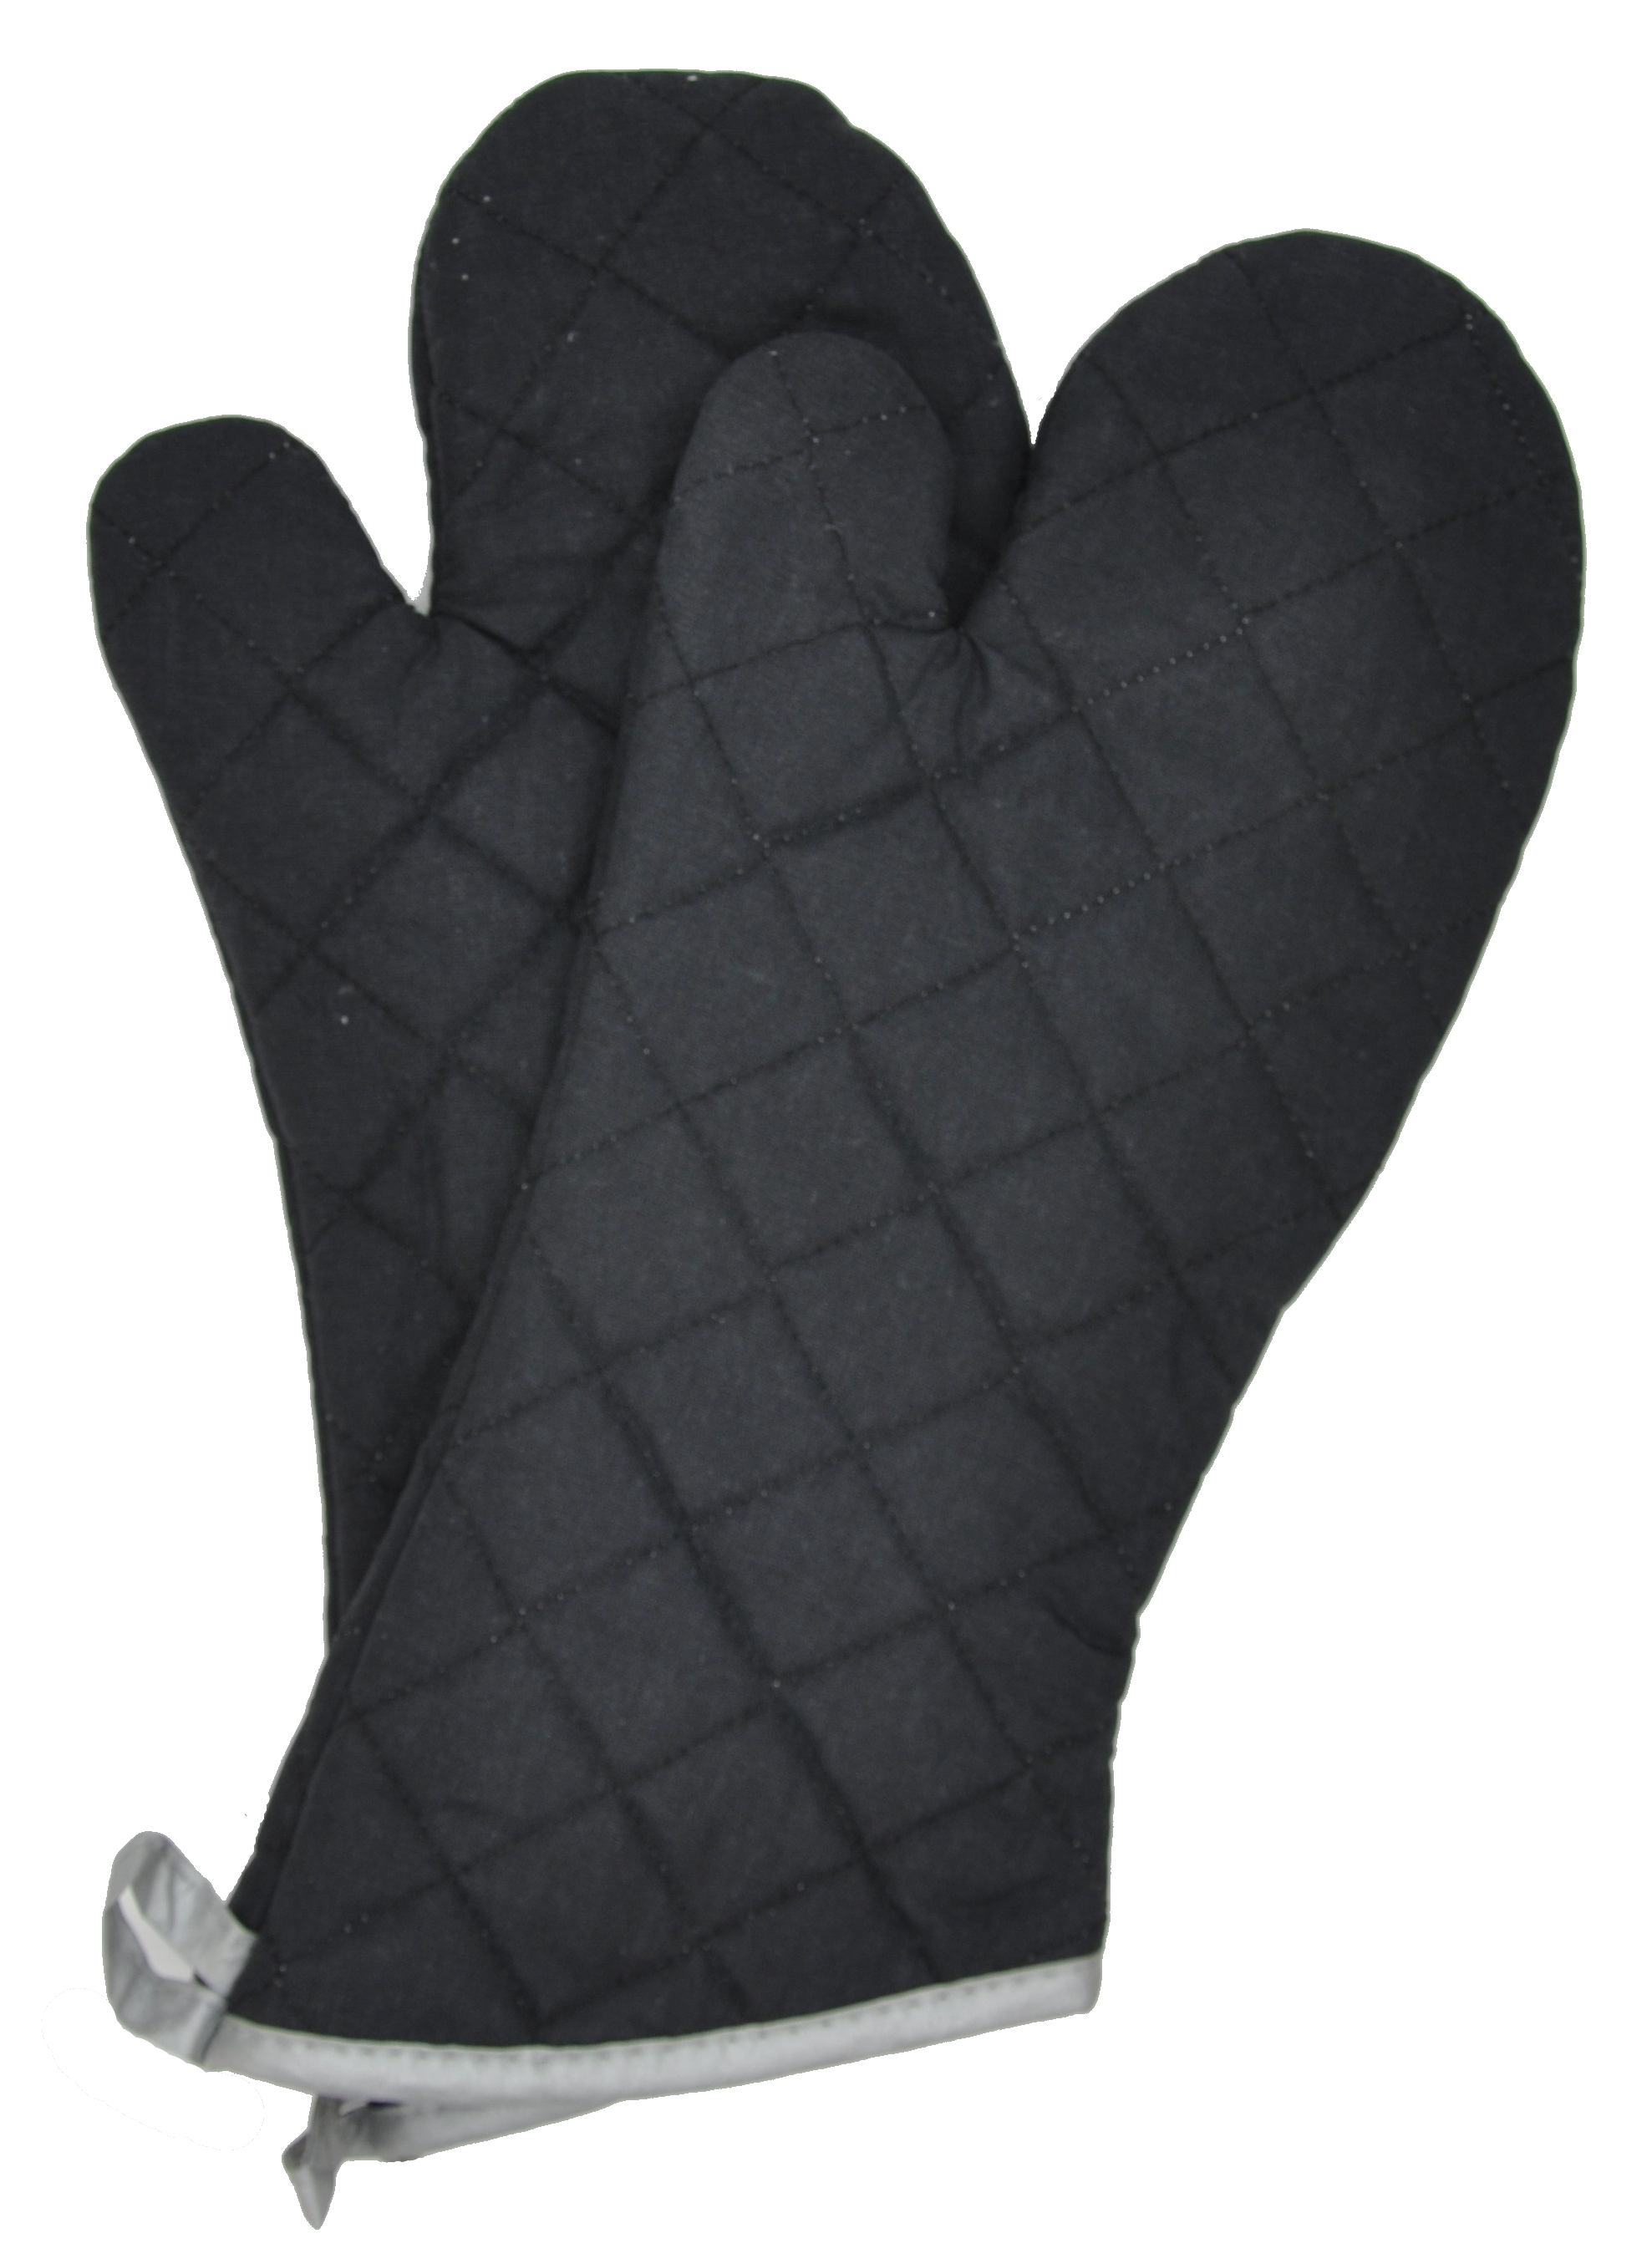 Eurow & O'Reilly Corp. Flame Retardant Quilted Oven Mitts Commercial Grade (2-Pack) at Sears.com